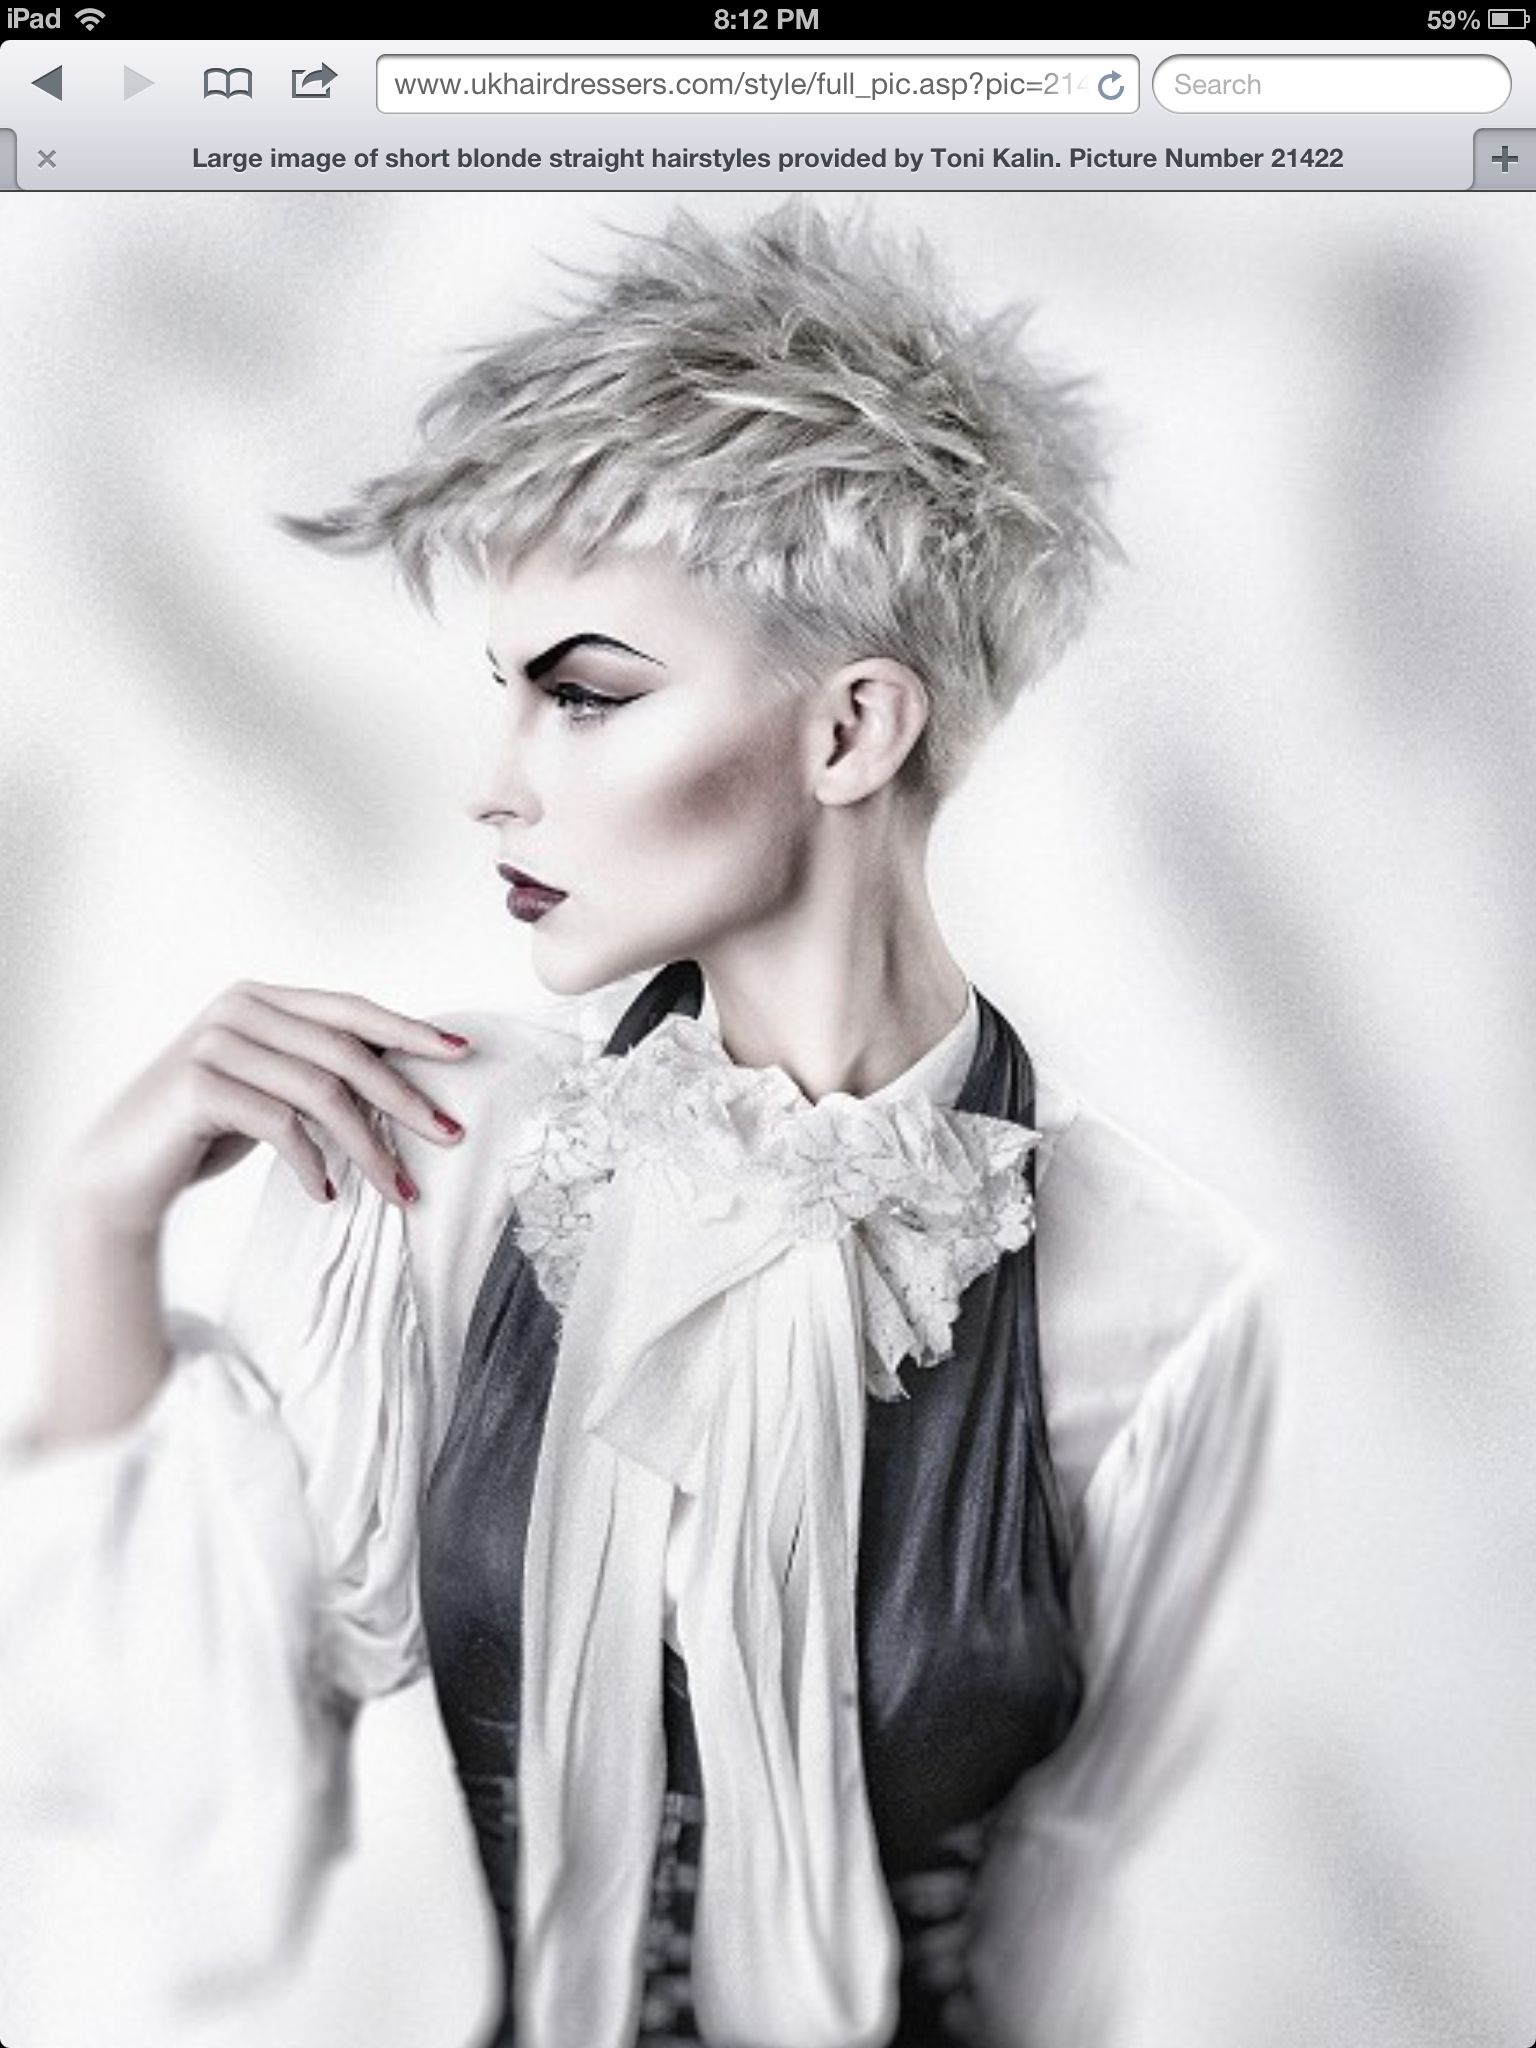 Very short | Great short edgy haircuts & styles | Pinterest